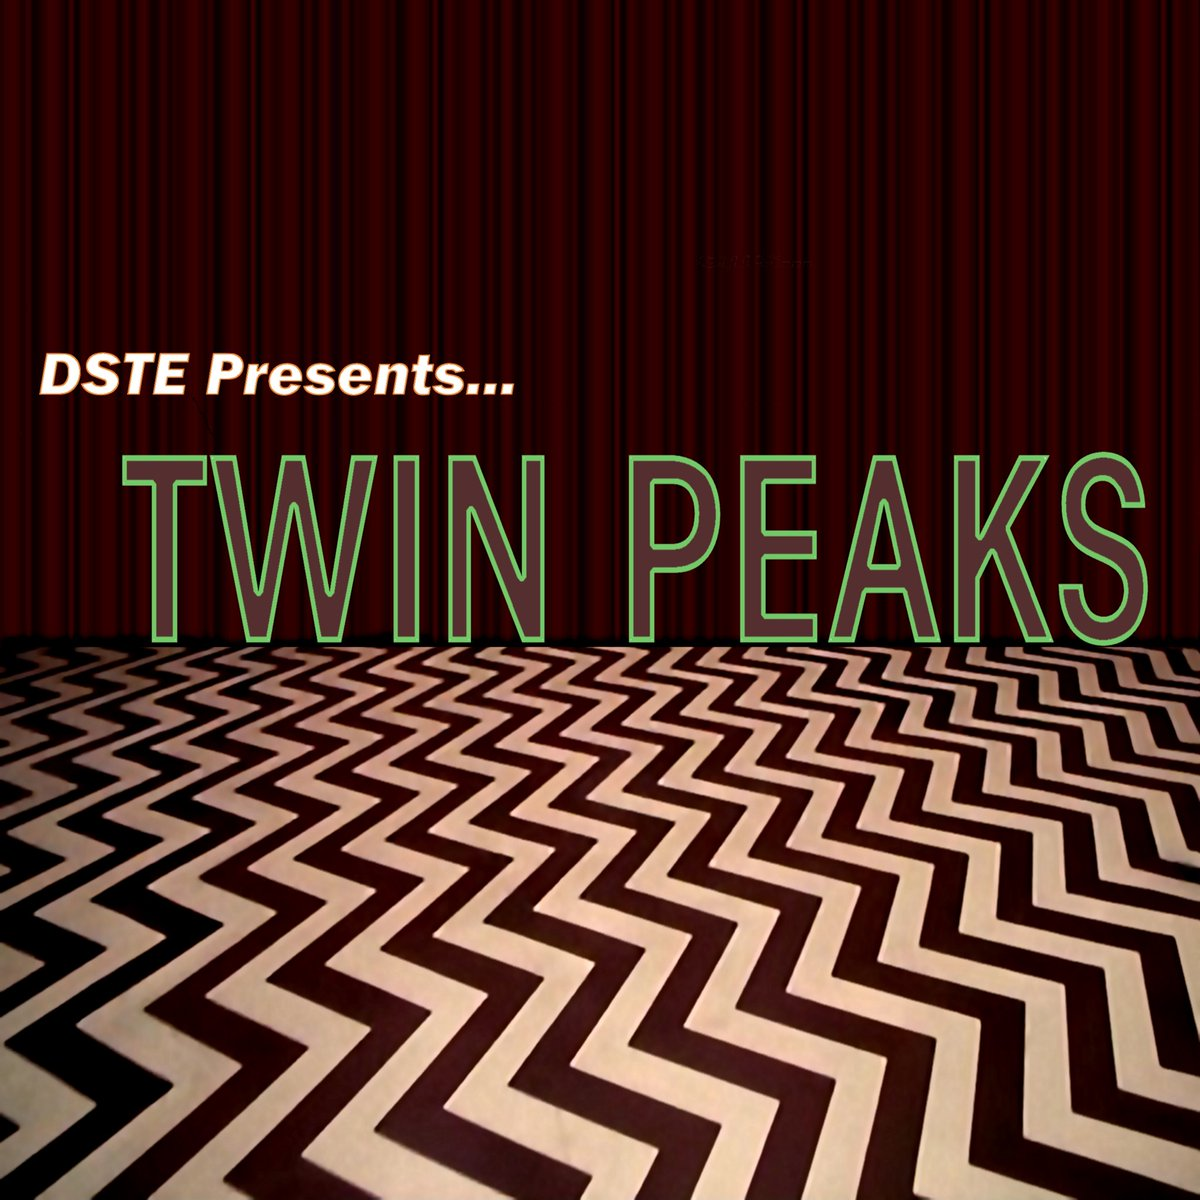 NEWRELEASE! DSTE Presents... #twinpeaks  Episode 7 now #LIVE #spinoff #podcast by @Taylor1980 @DsteNick Follow Weekly. SPOILER WARNING!!!<br>http://pic.twitter.com/6PJv4pFVsd